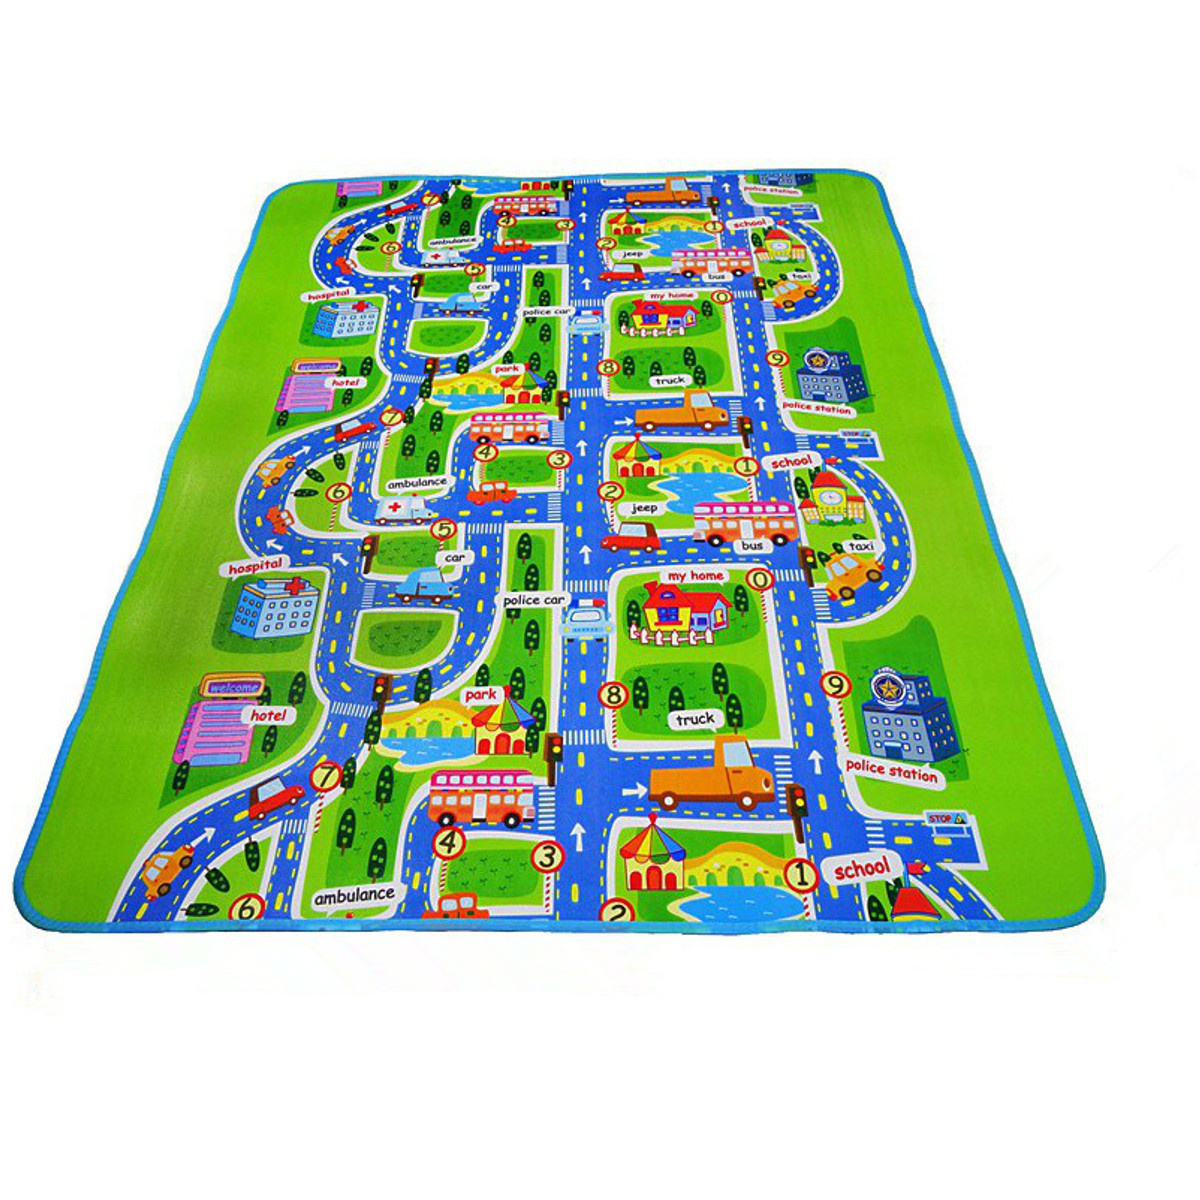 Baby Educational Road Traffic Play Mat Infant Toddler Kids Game Carpet Rugs Bedroom Play Room Decor Black Friday Clearance